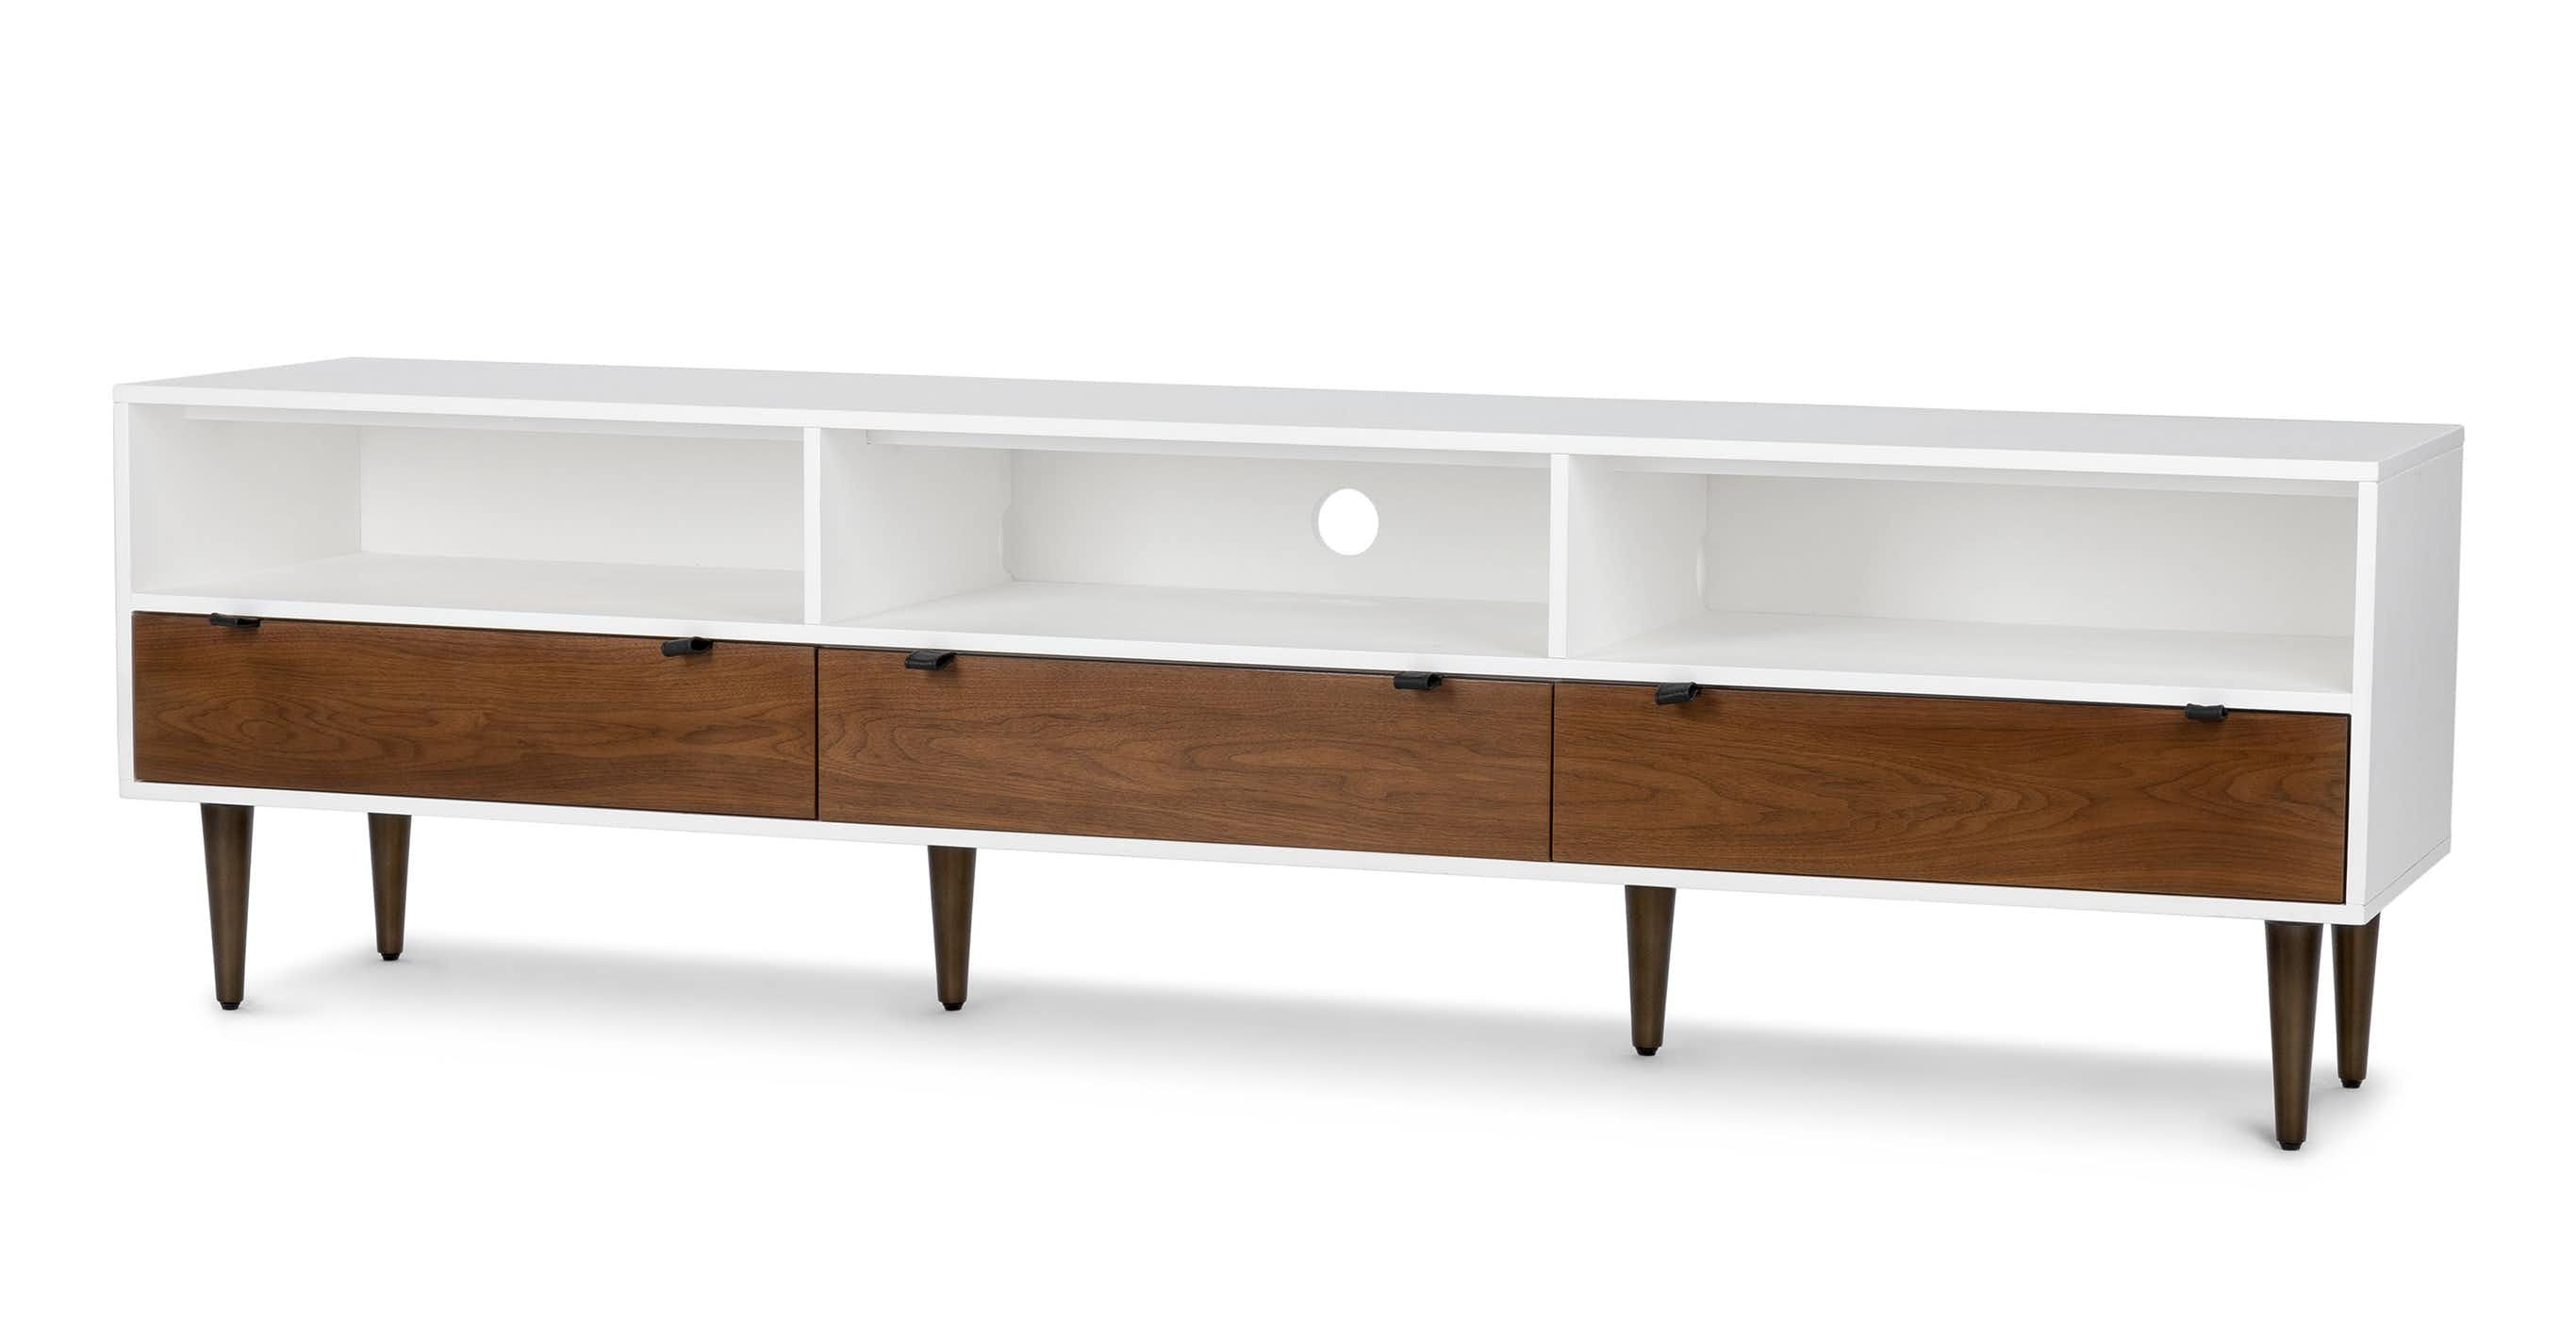 6da740698974d2 The Envelo media unit's walnut drawers are cased in brilliant matte white  lacquer, making it the centre of attention. Stash your board games or your  remote ...